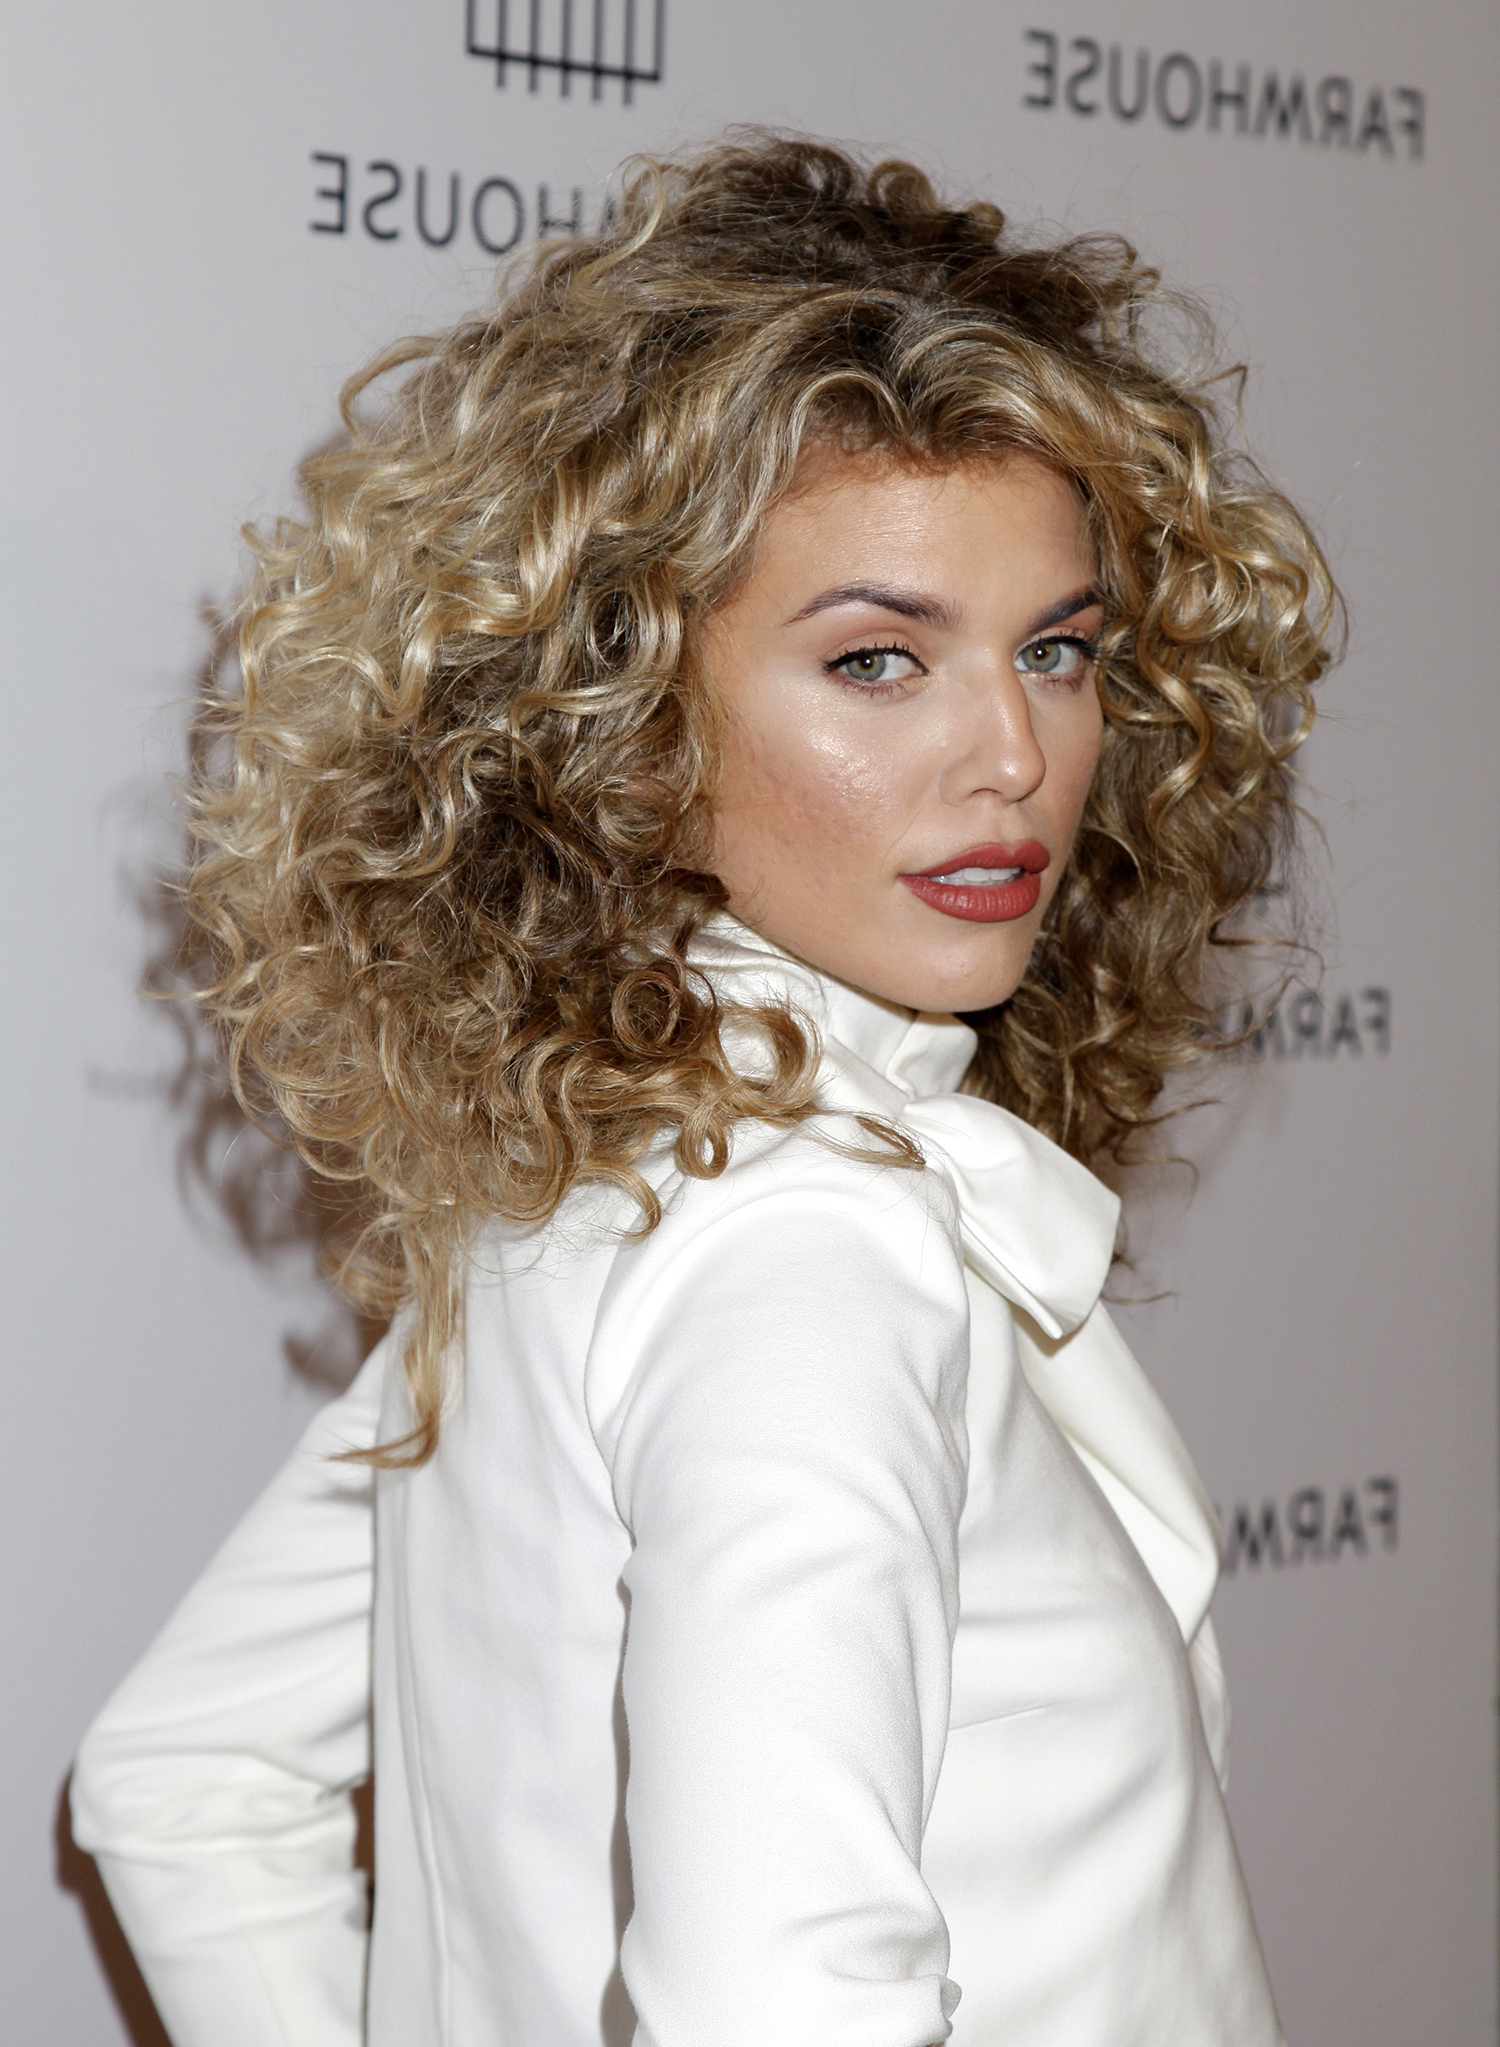 The Best Curly Hair Highlights To Try Now | Real Simple With Regard To Brown Curly Hairstyles With Highlights (View 20 of 25)